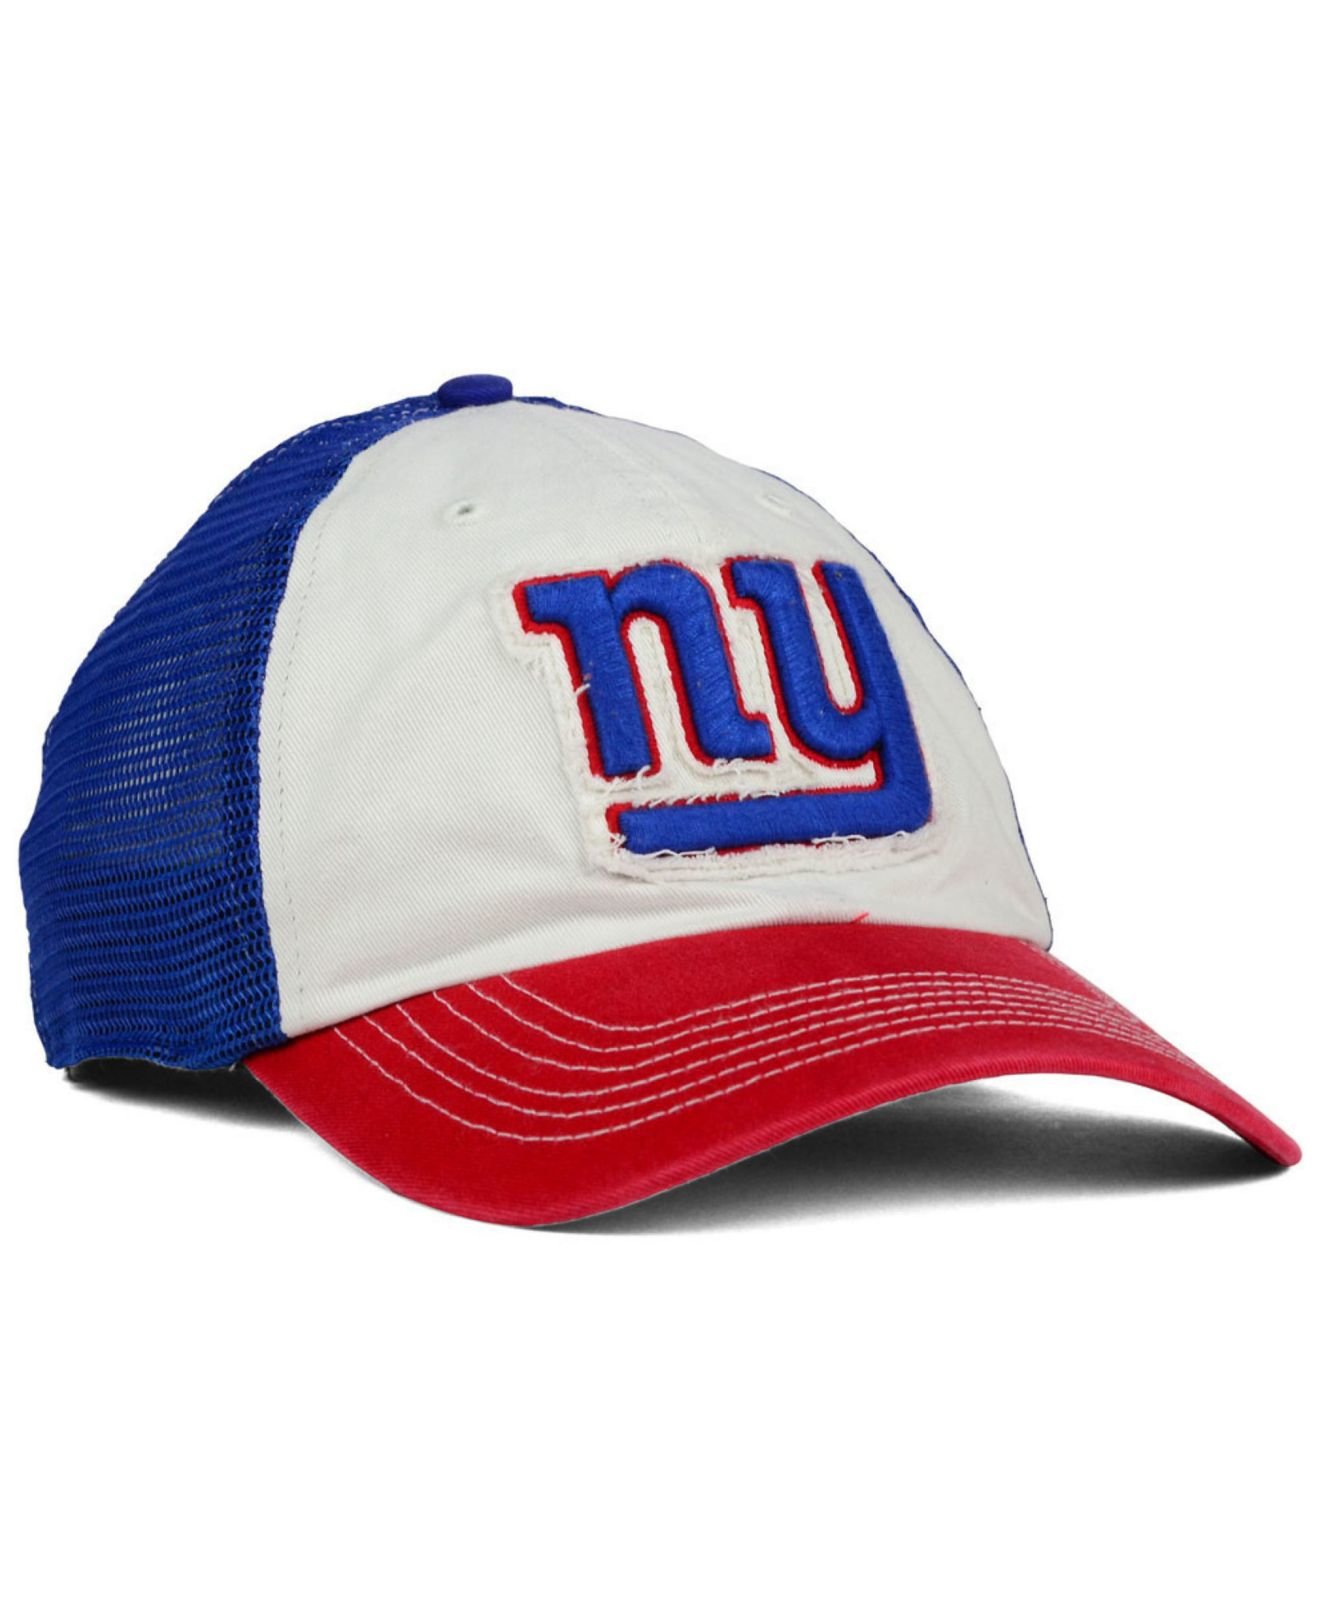 47 brand new york giants privateer closer cap in red for. Black Bedroom Furniture Sets. Home Design Ideas